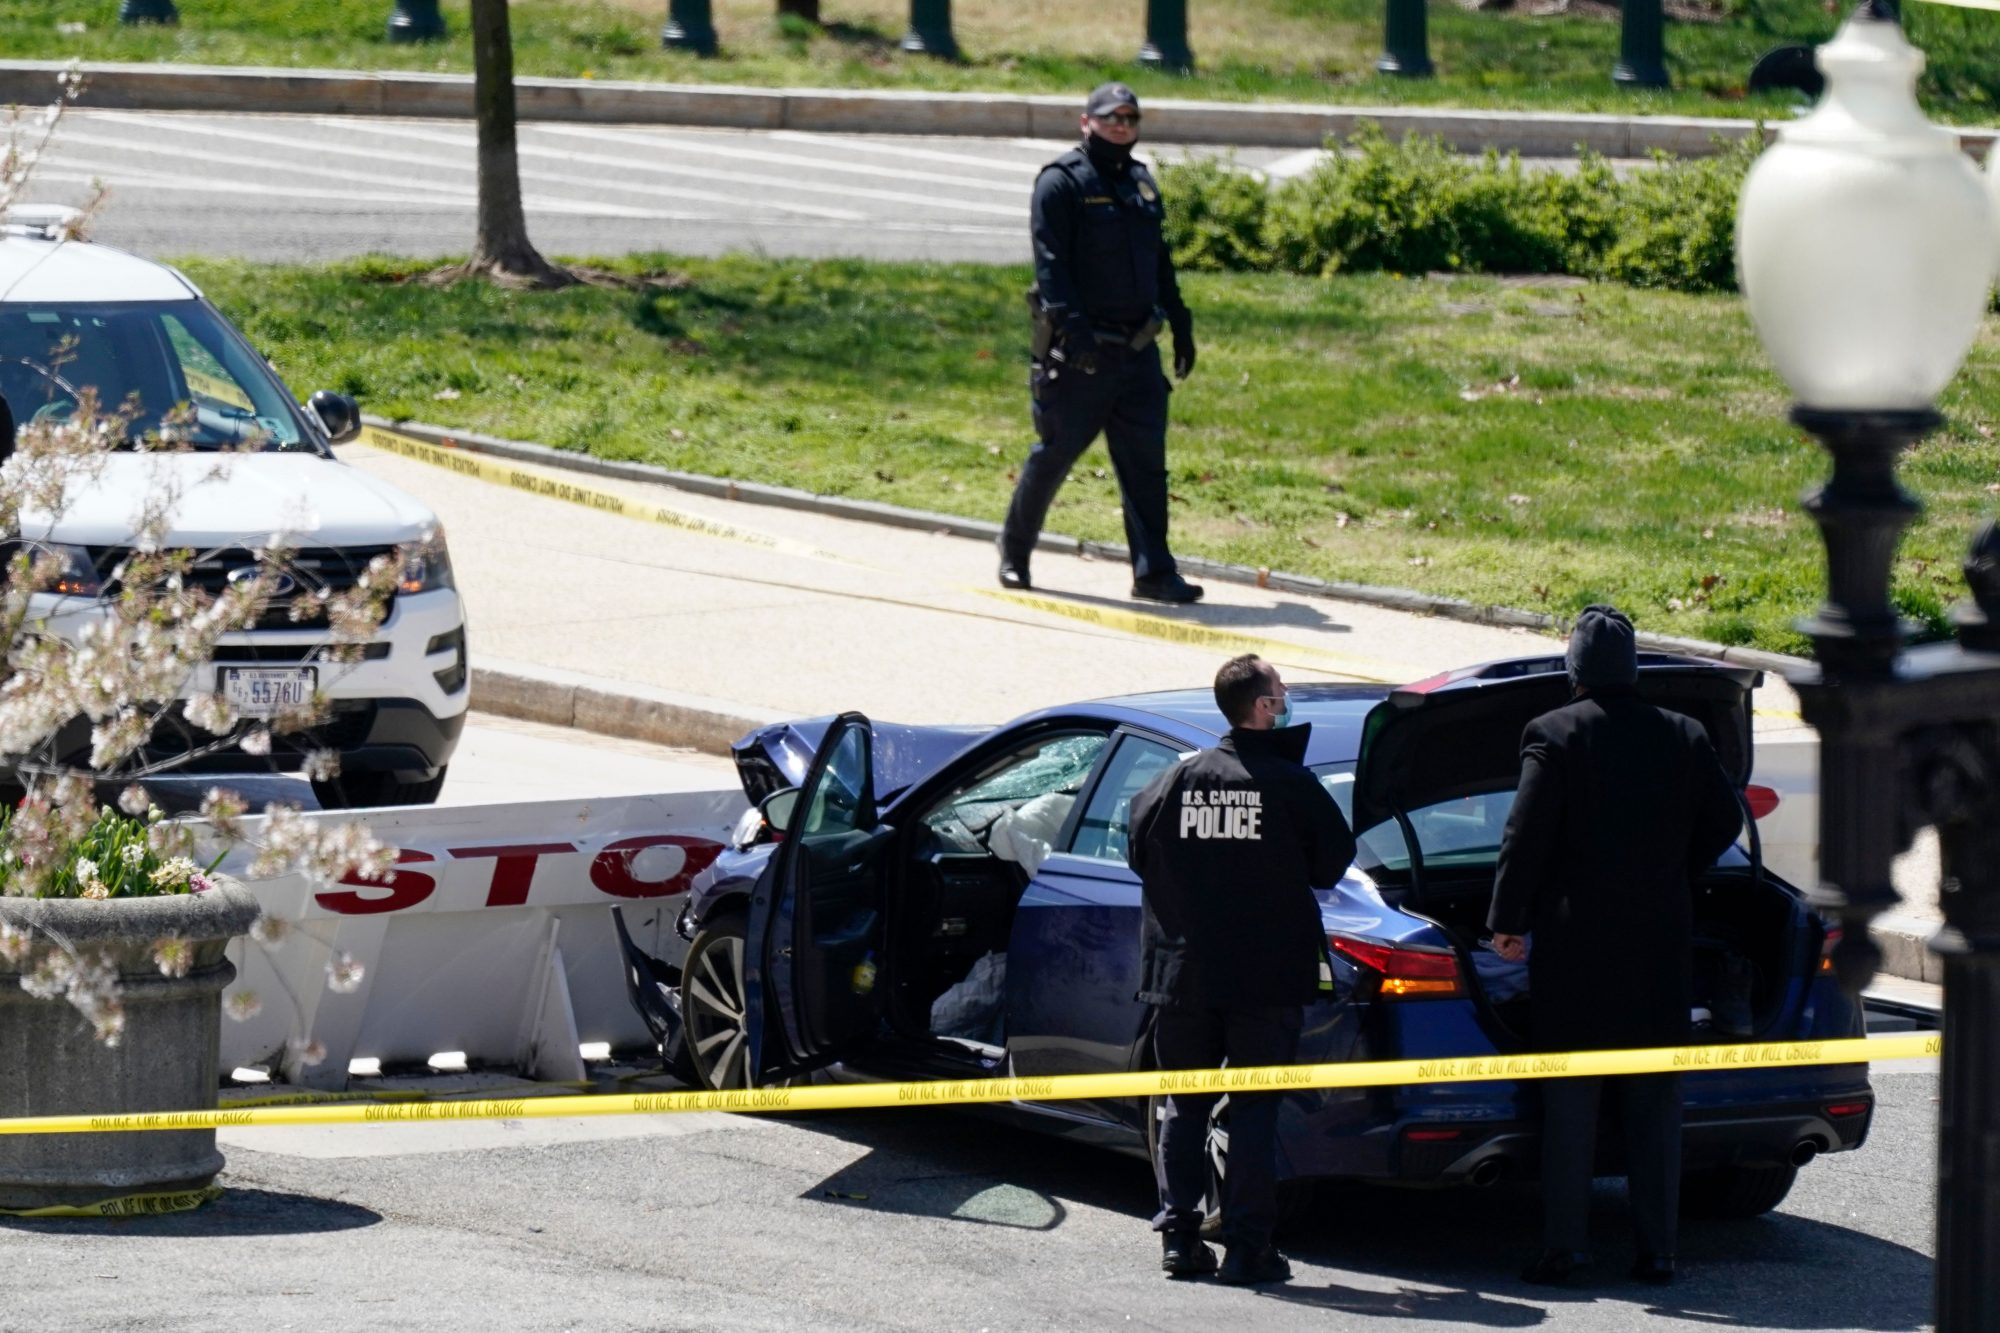 Capitol Police officers stand near a car that crashed into a barrier on Capitol Hill